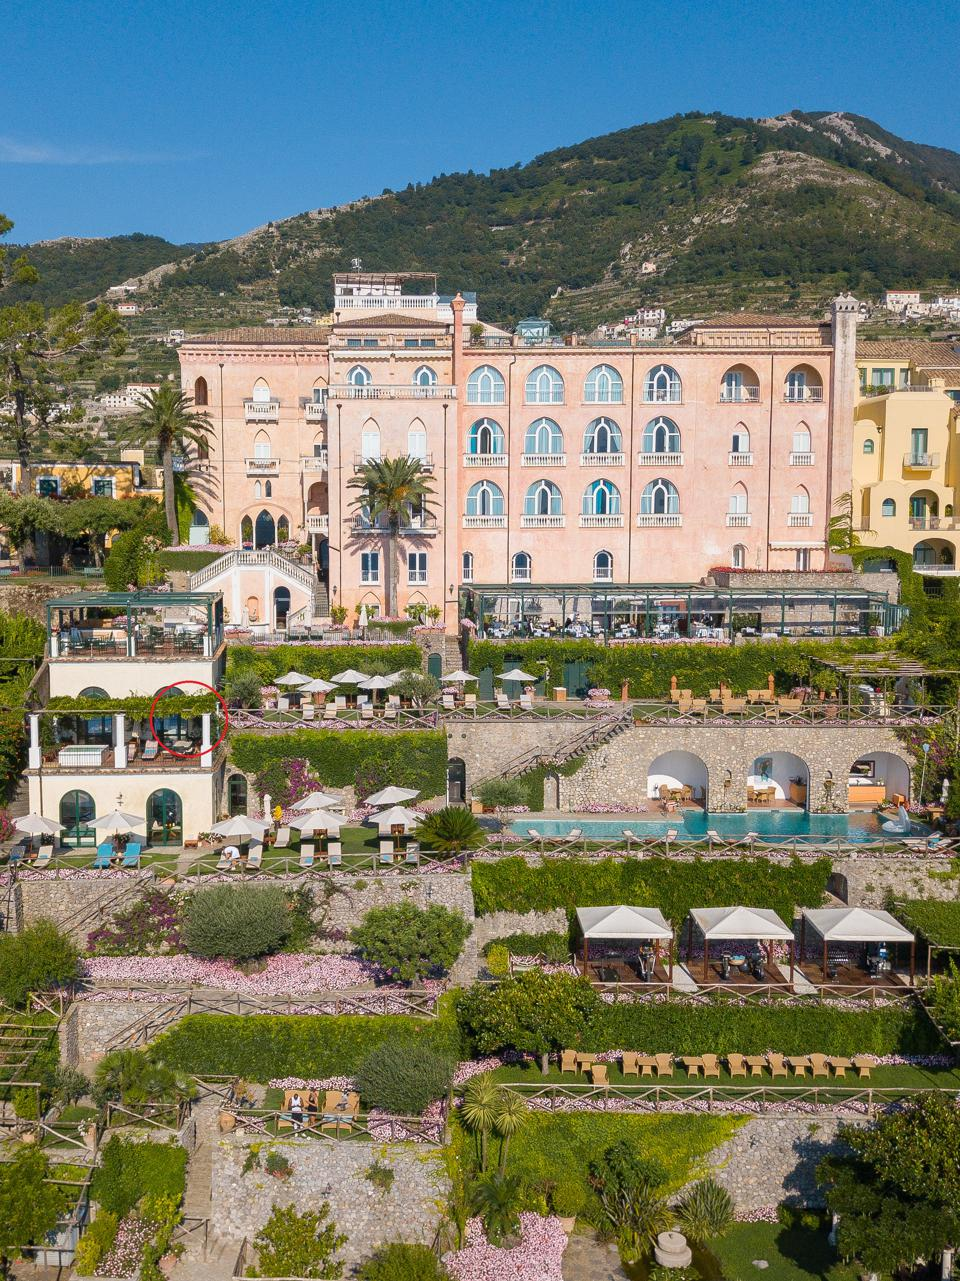 Palazzo Avino, also known as The Pink Palace in Ravello on the Amalfi Coast